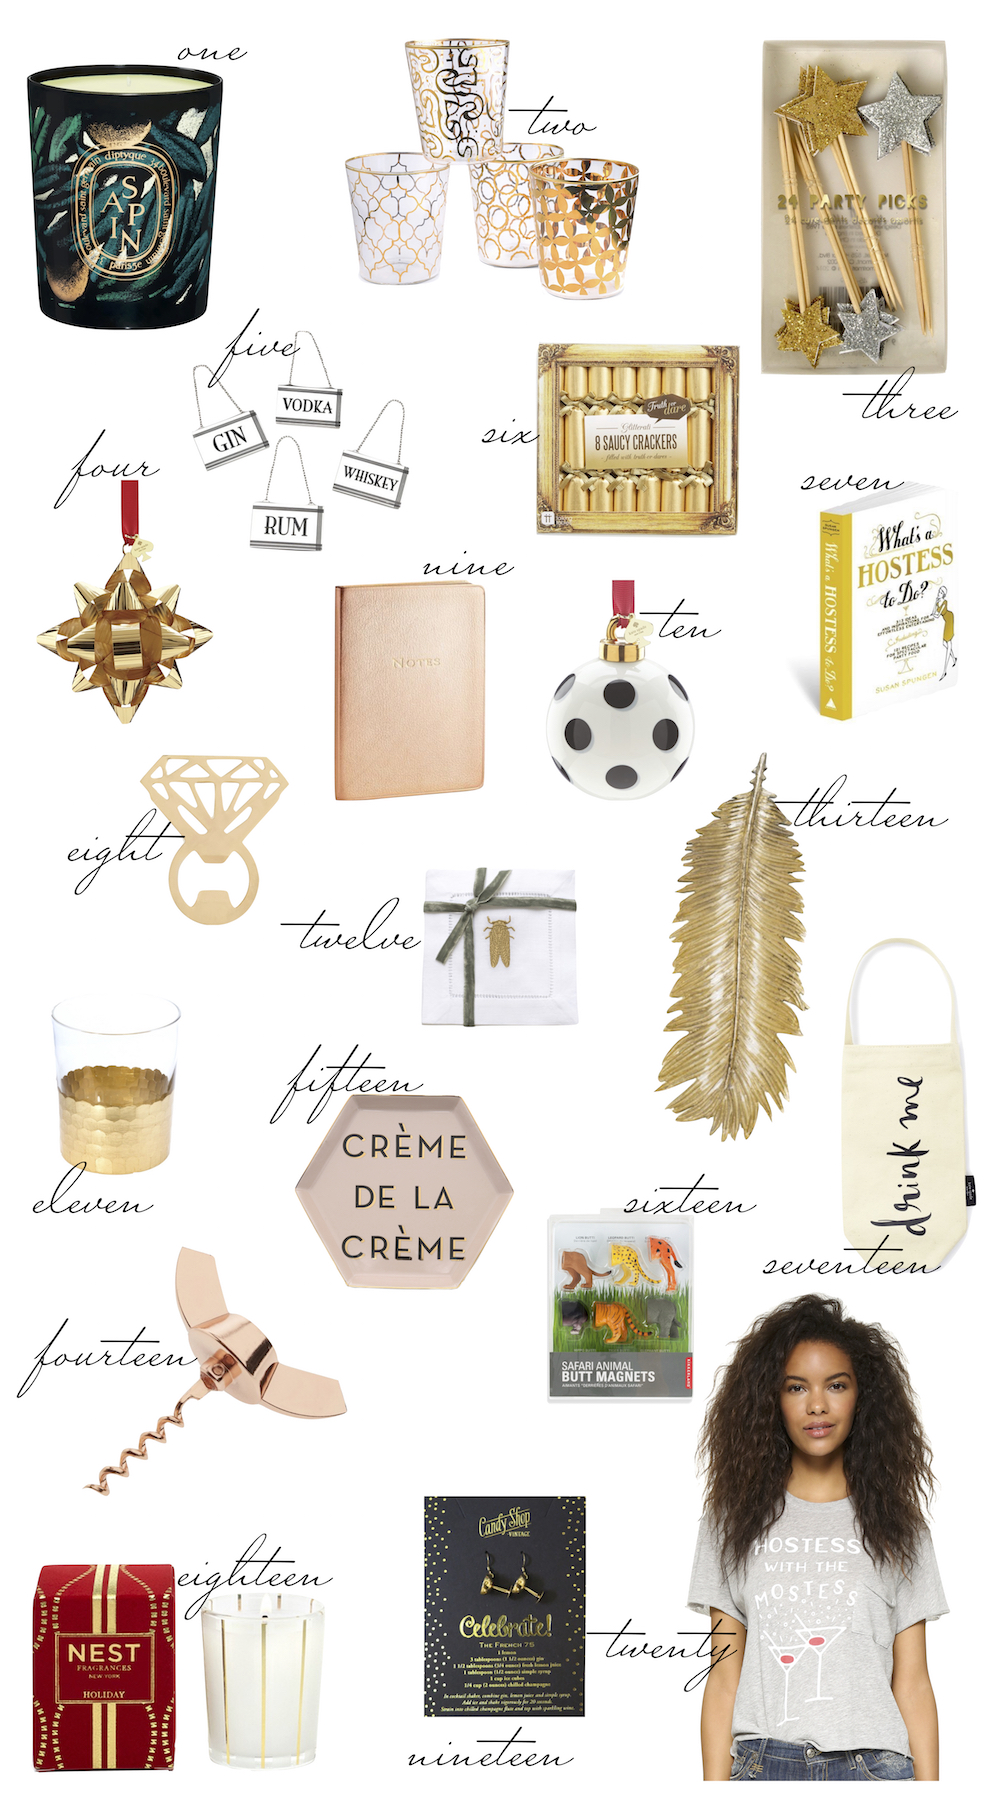 The Stripe Holiday Gift Guide for Hostess